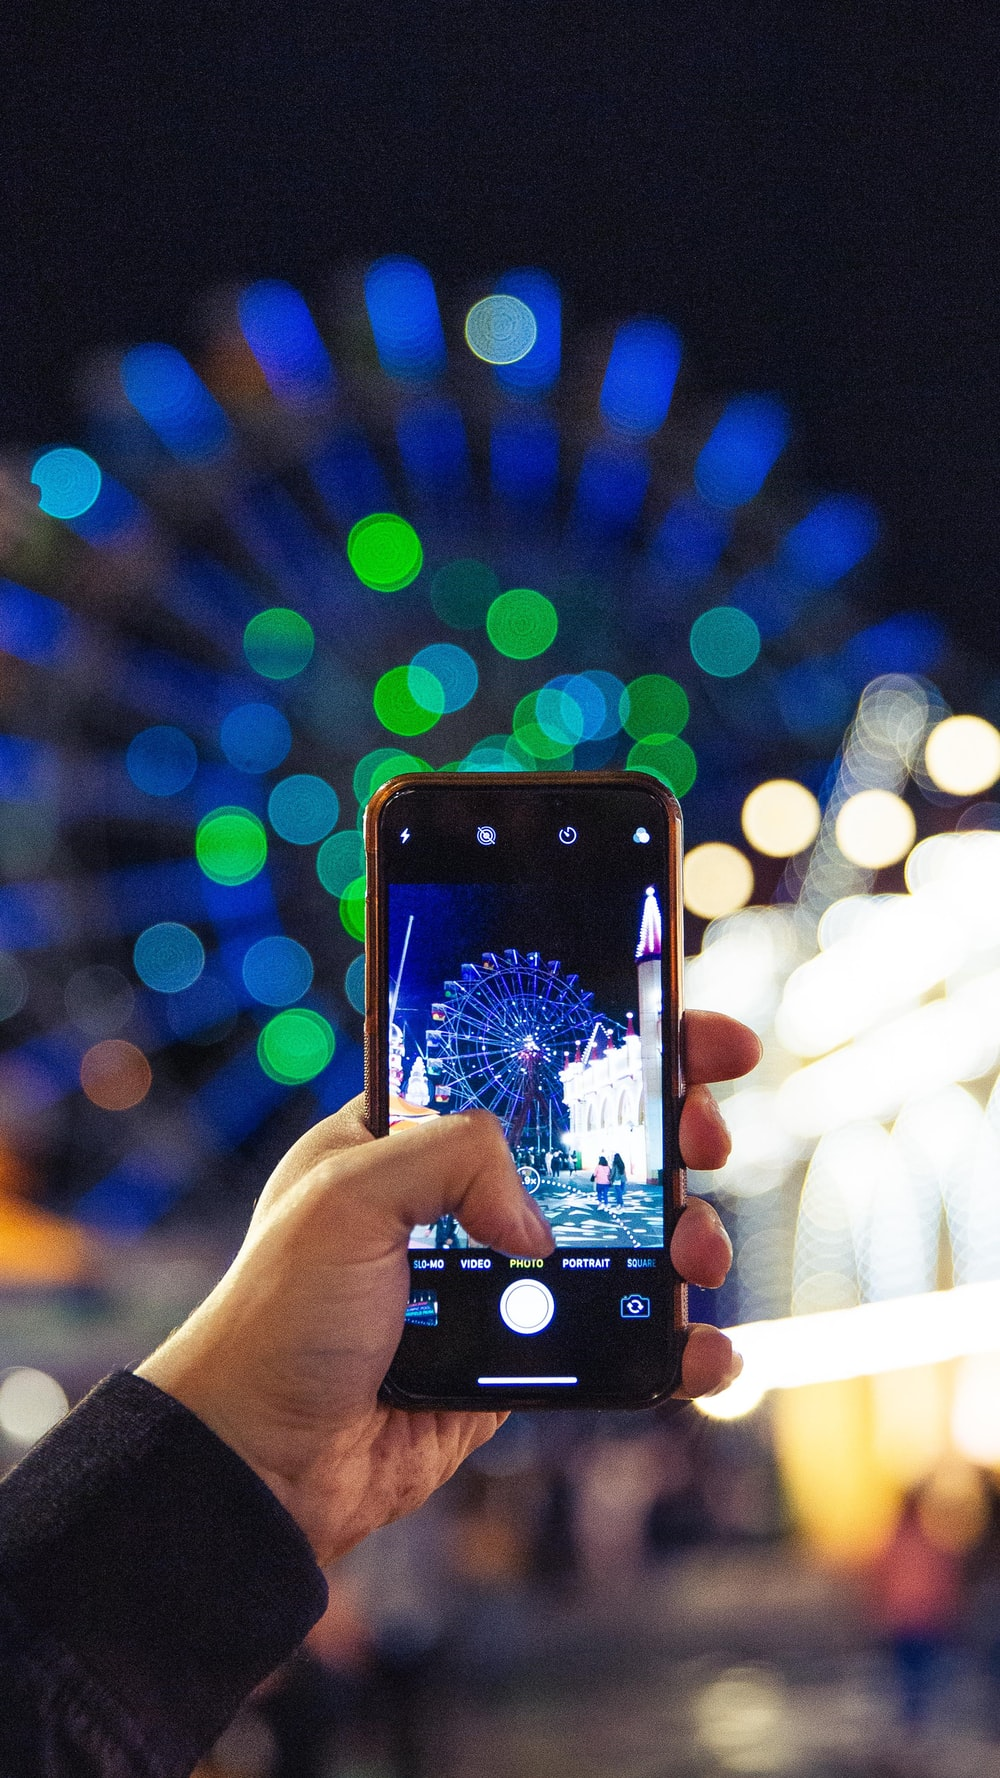 person holding smartphone displaying camera flashing the Ferris wheel